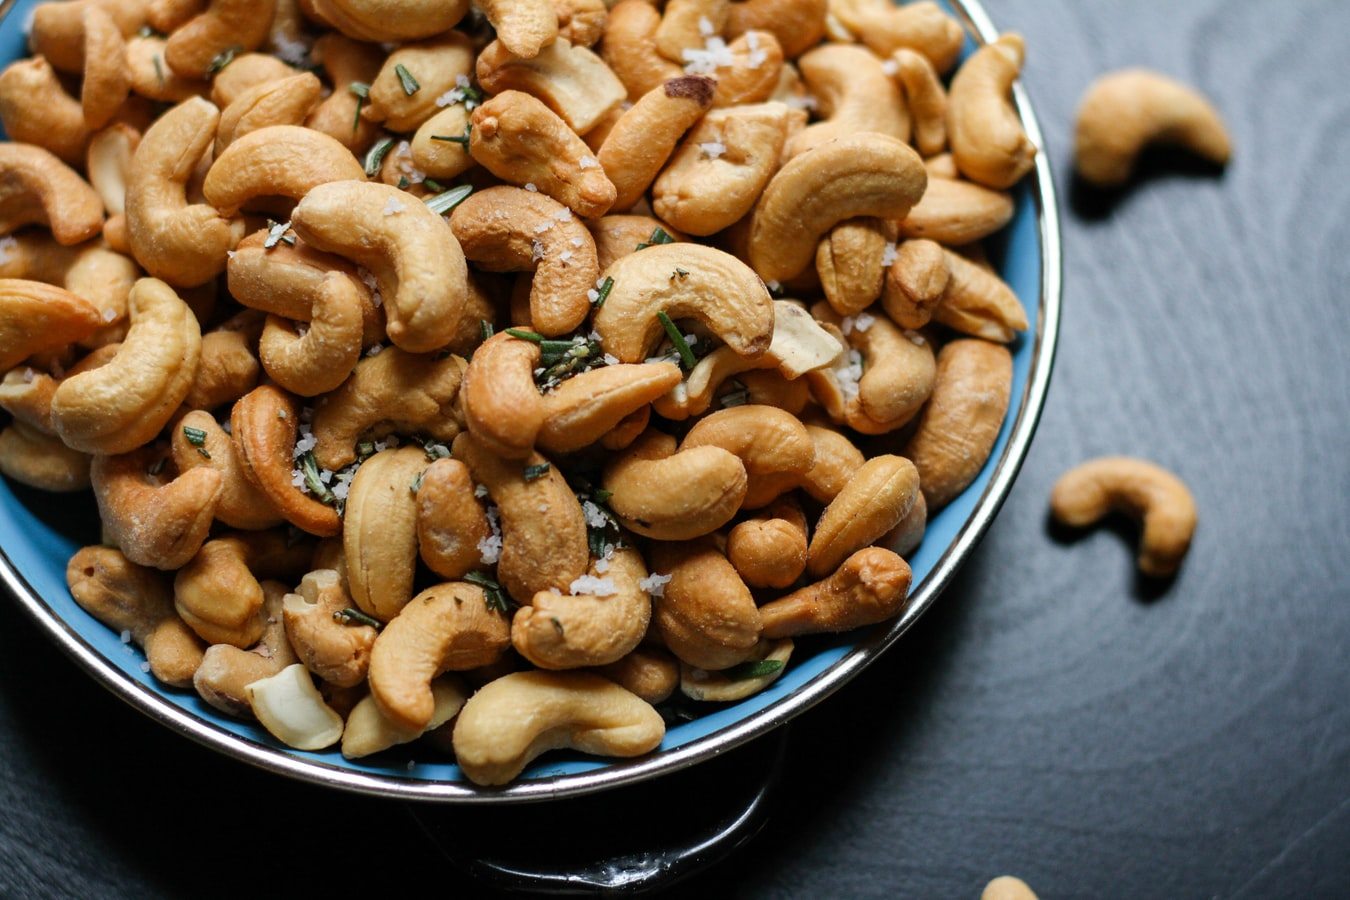 10 Things You Should Know About Cashews